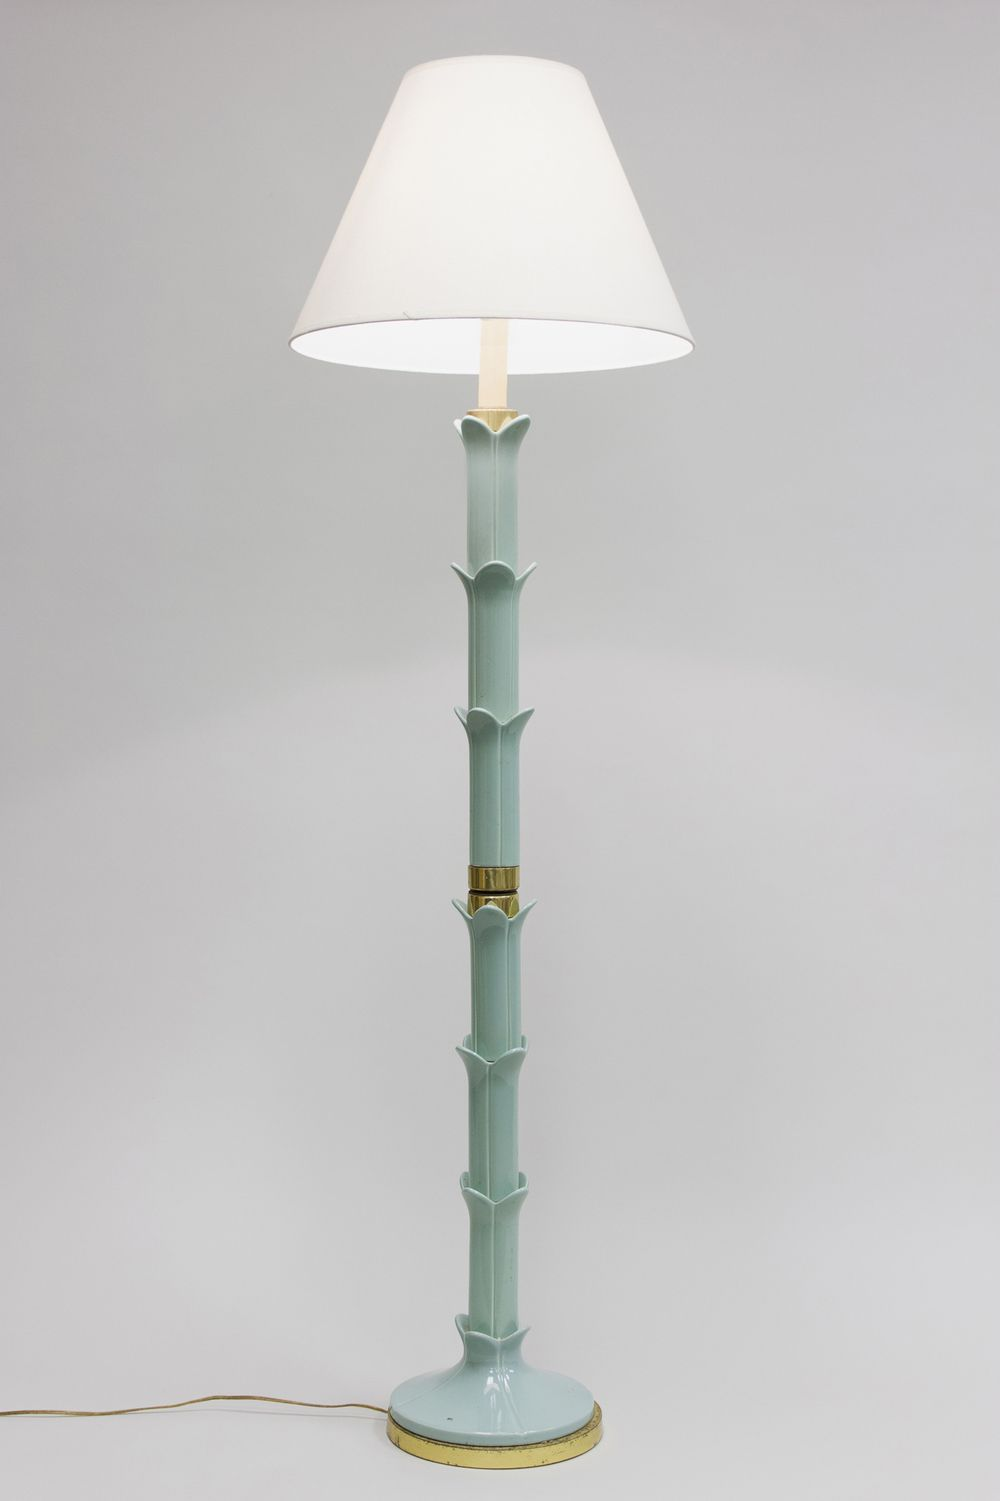 Vintage Turquoise Ceramic Faux Bamboo Floor Lamp Very Intricately